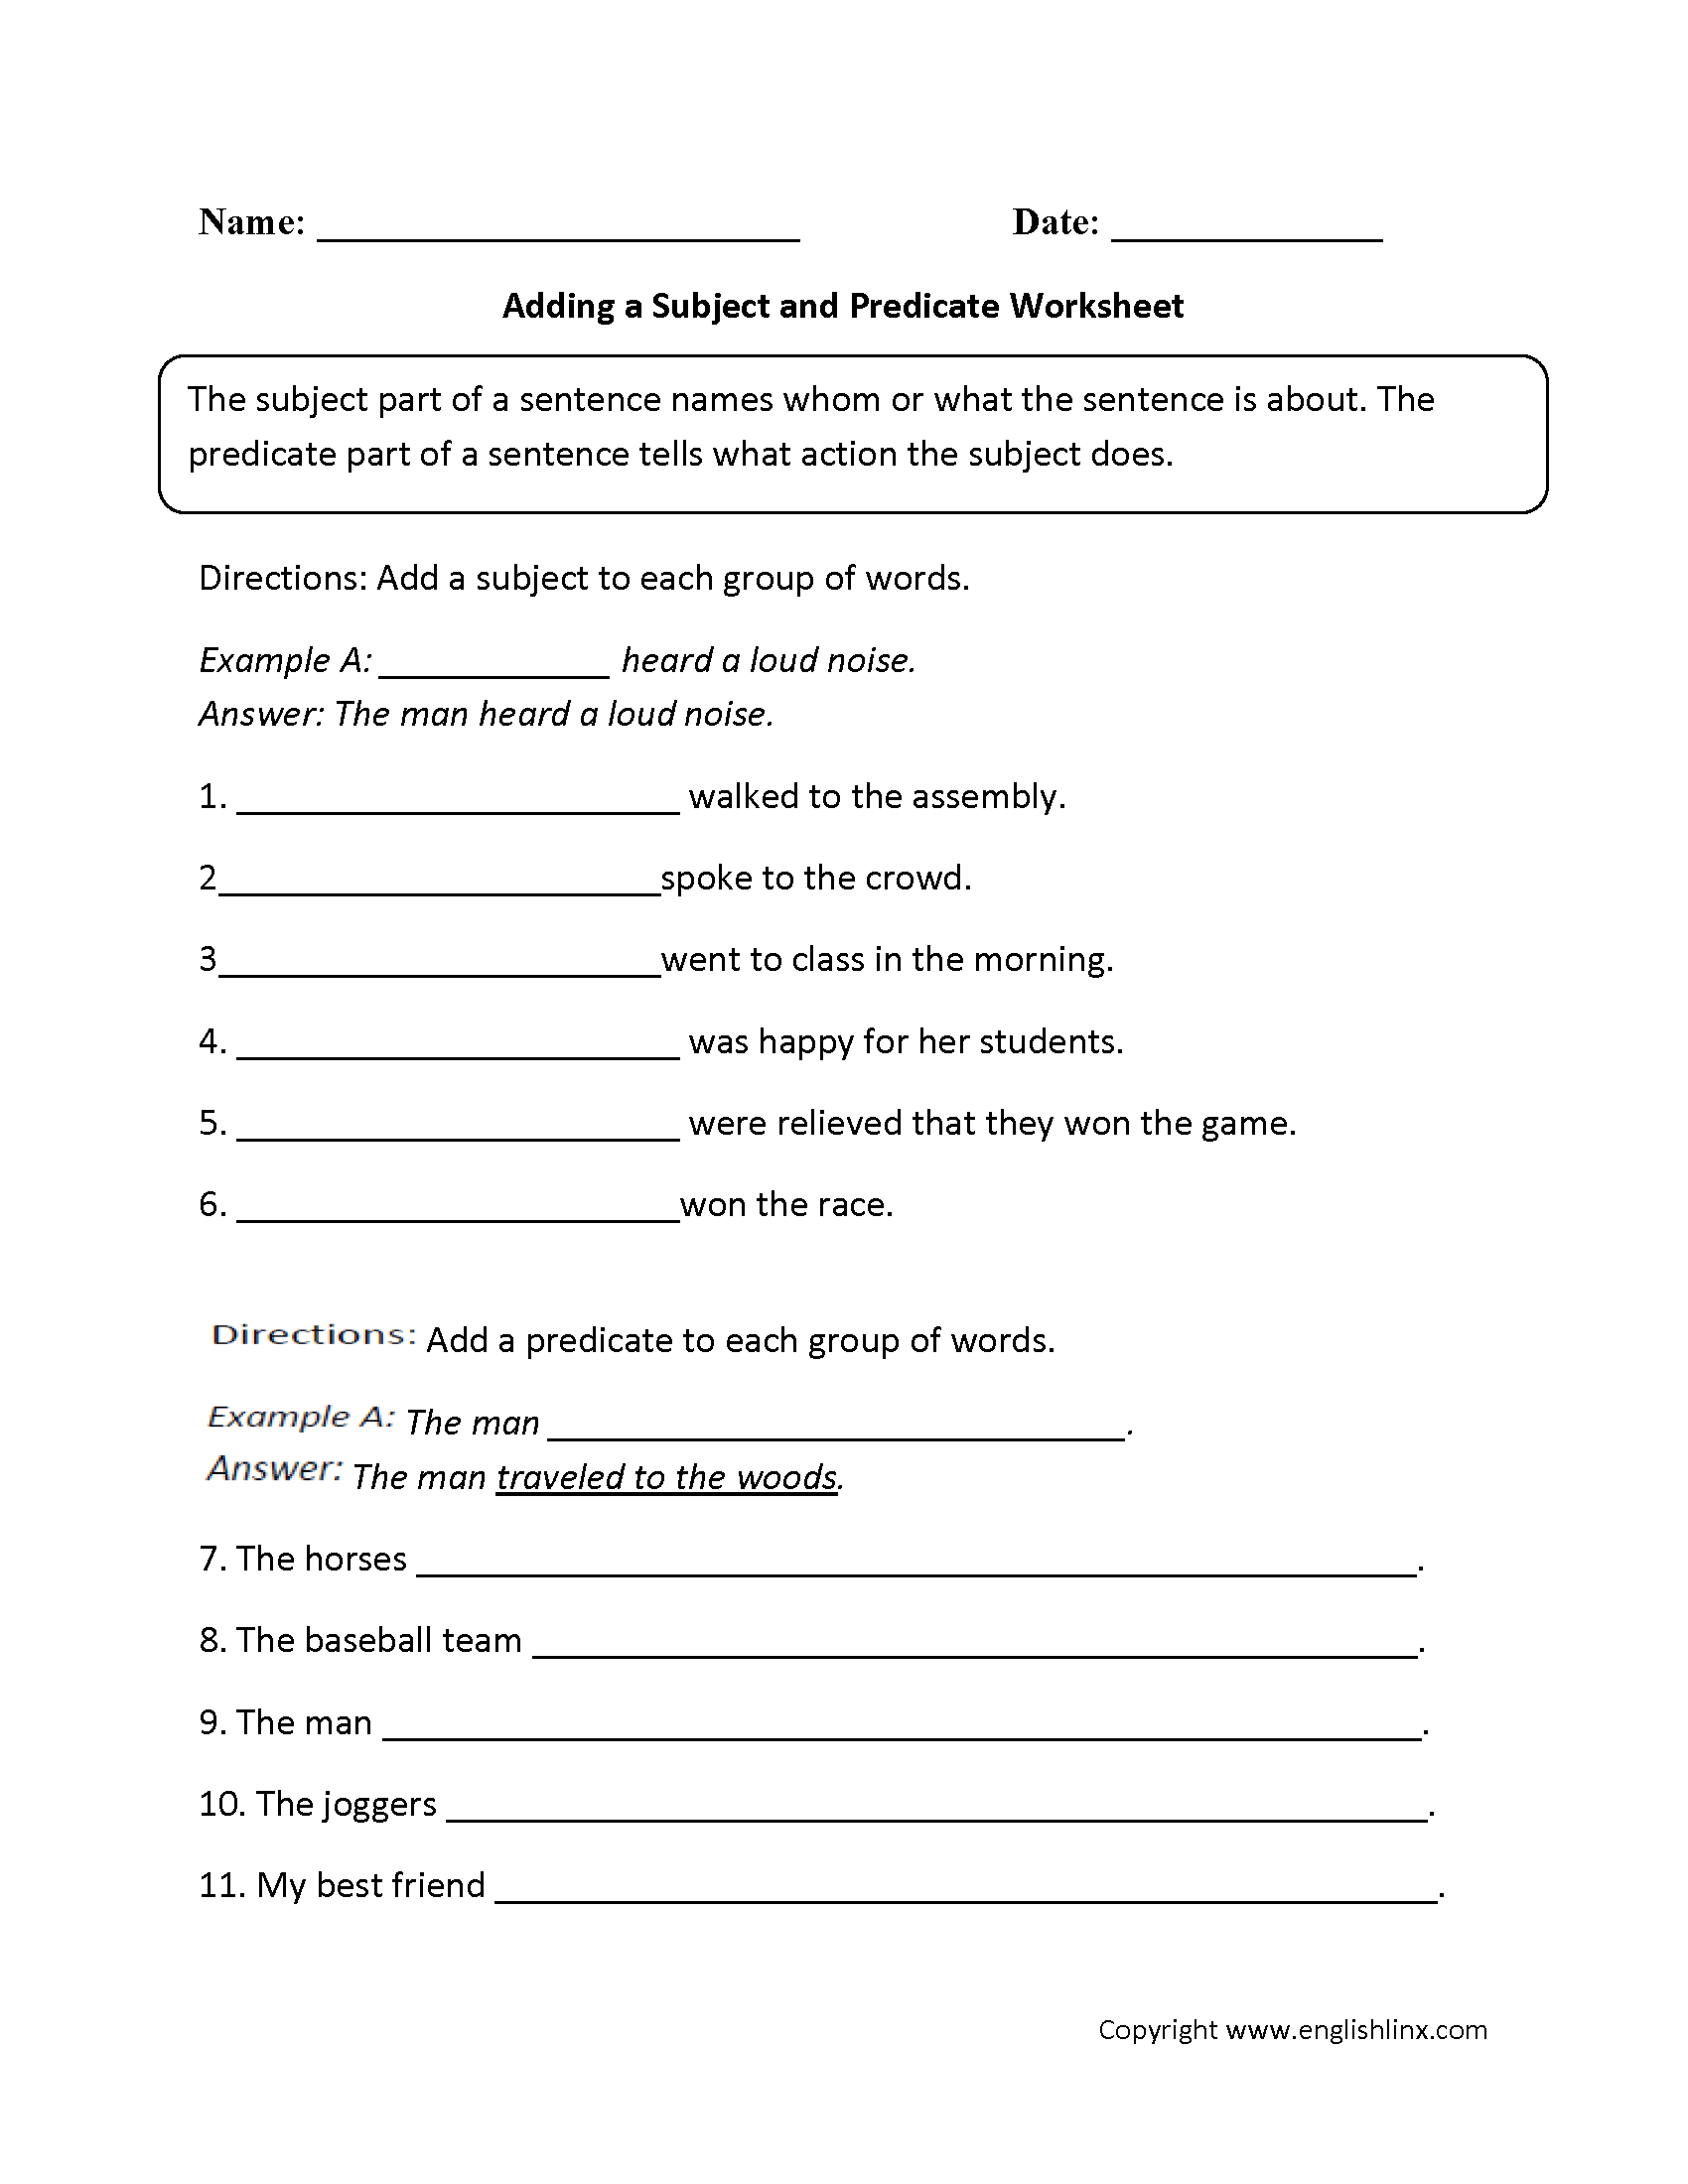 Englishlinx Subject And Predicate Worksheets